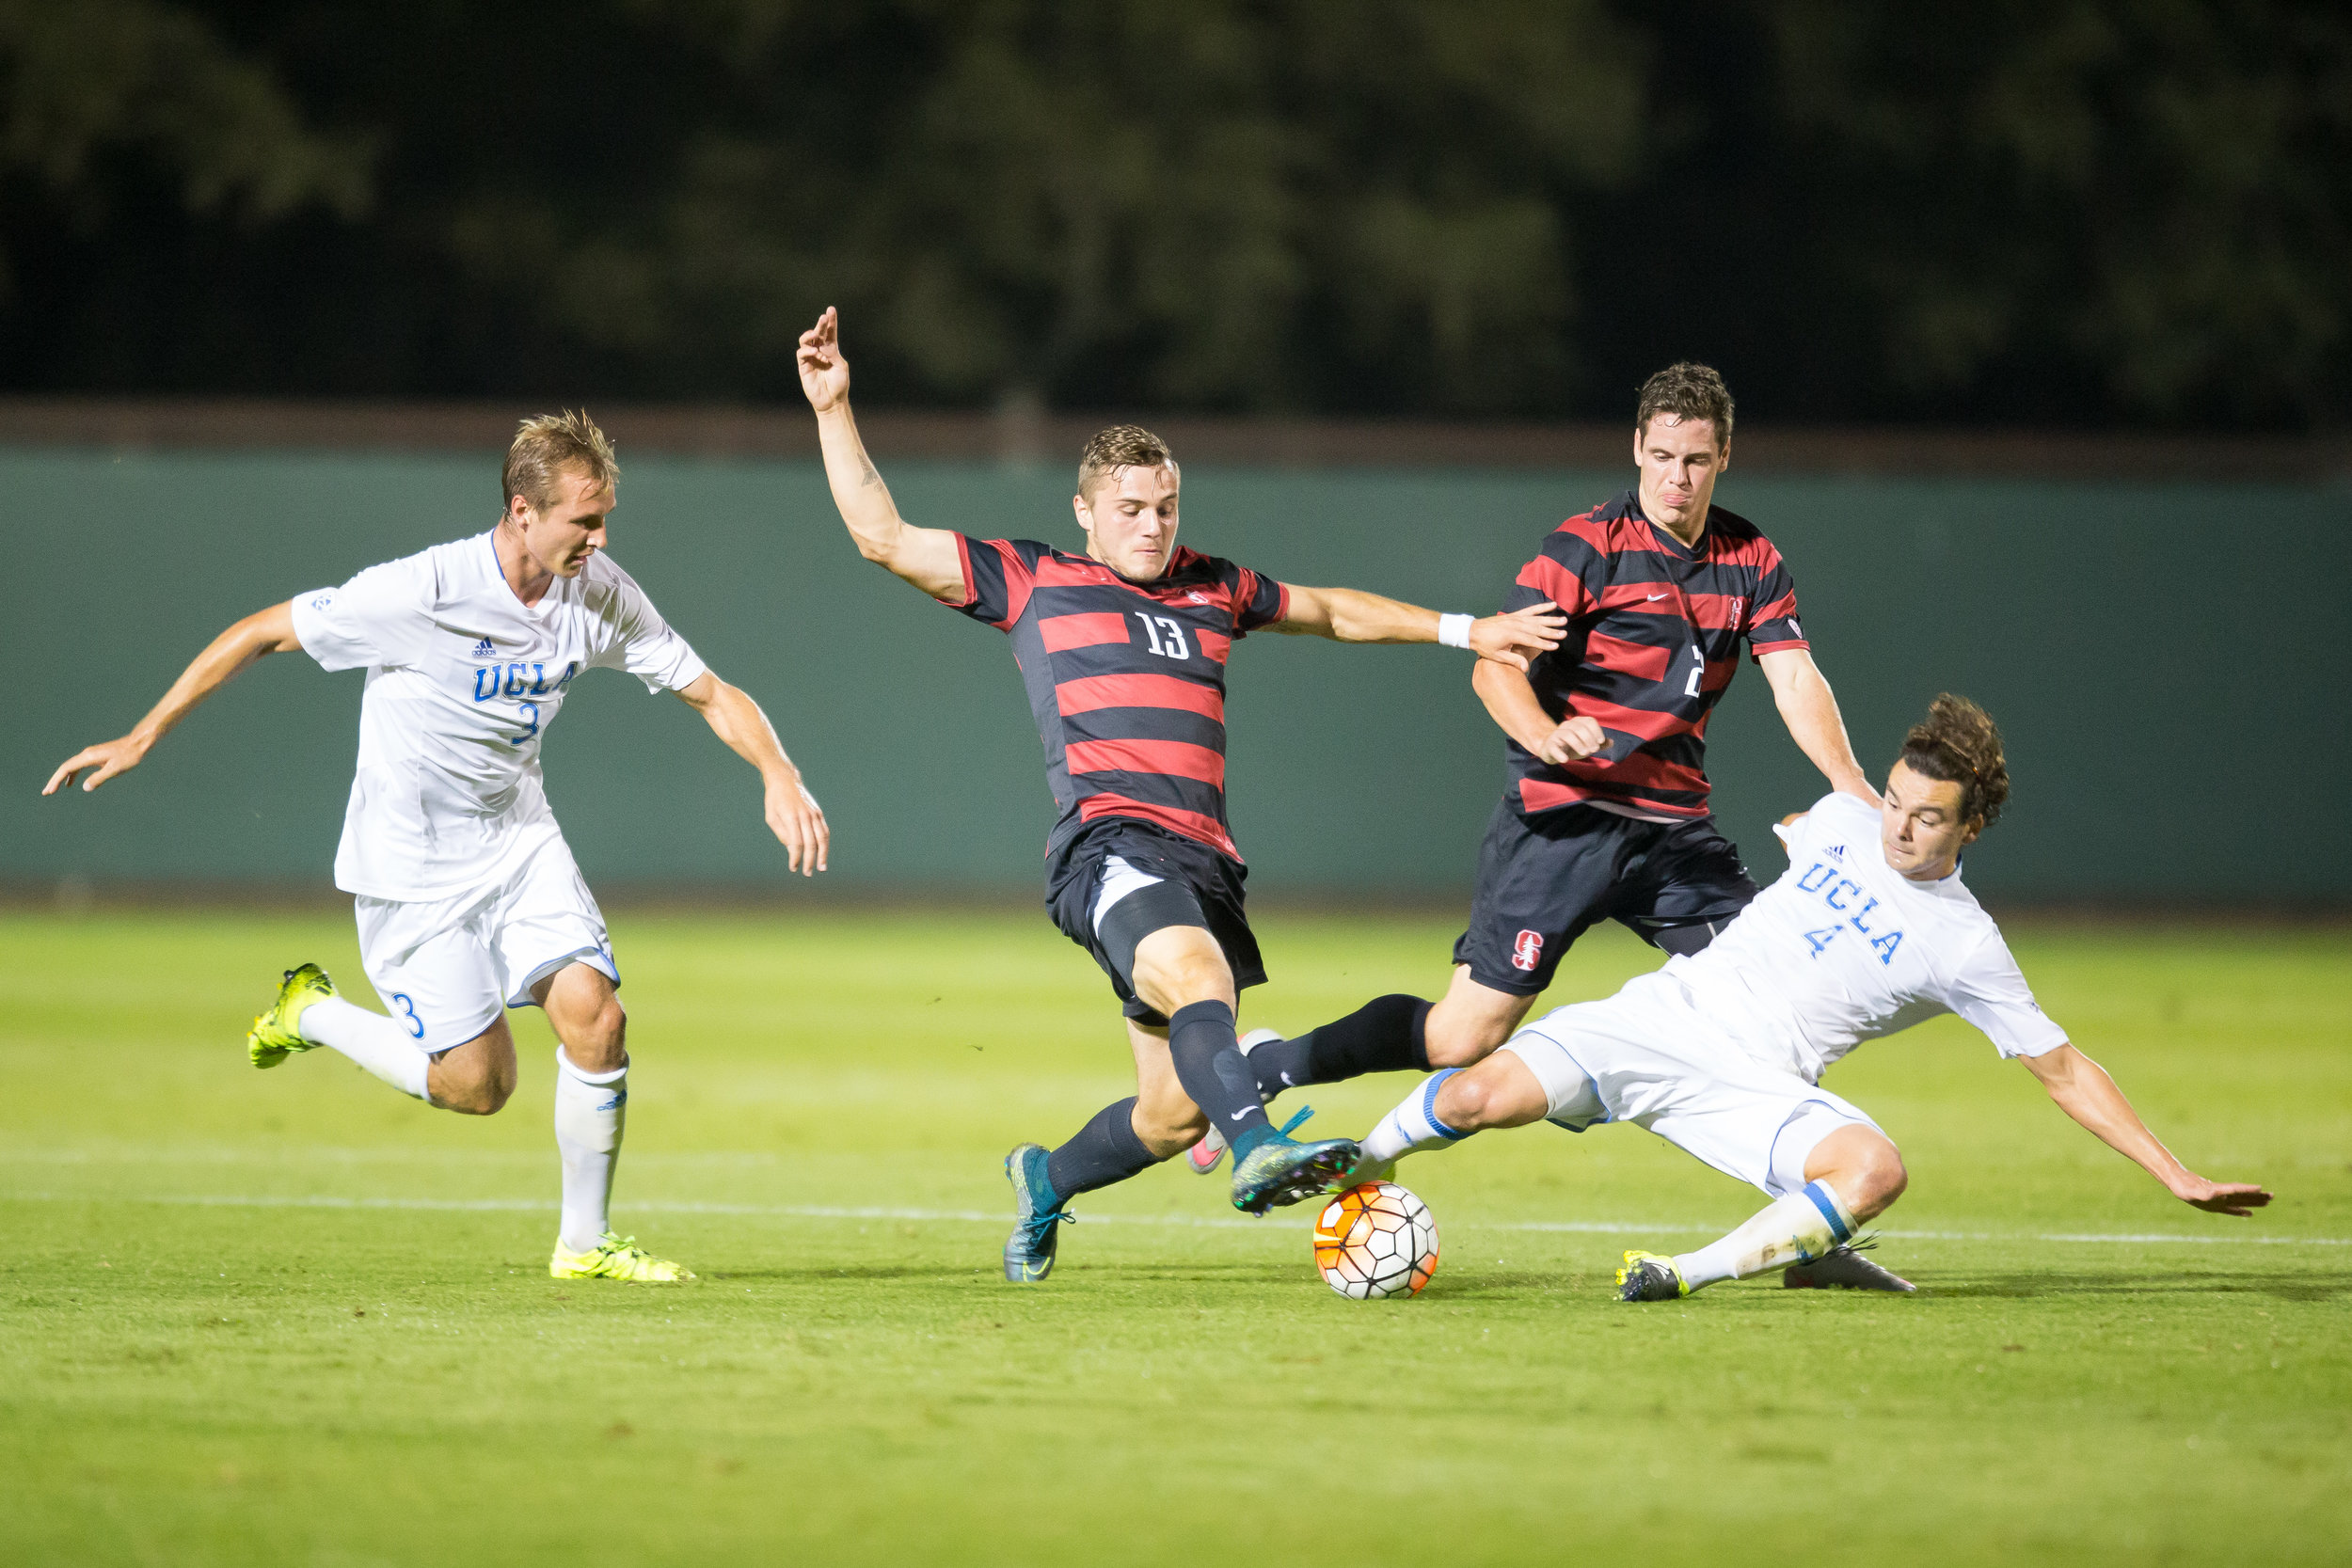 Jordan Morris - Stanford, CA - October 23, 2015: Stanford Men's Soccer vs UCLA. Photo by Casey Valentine